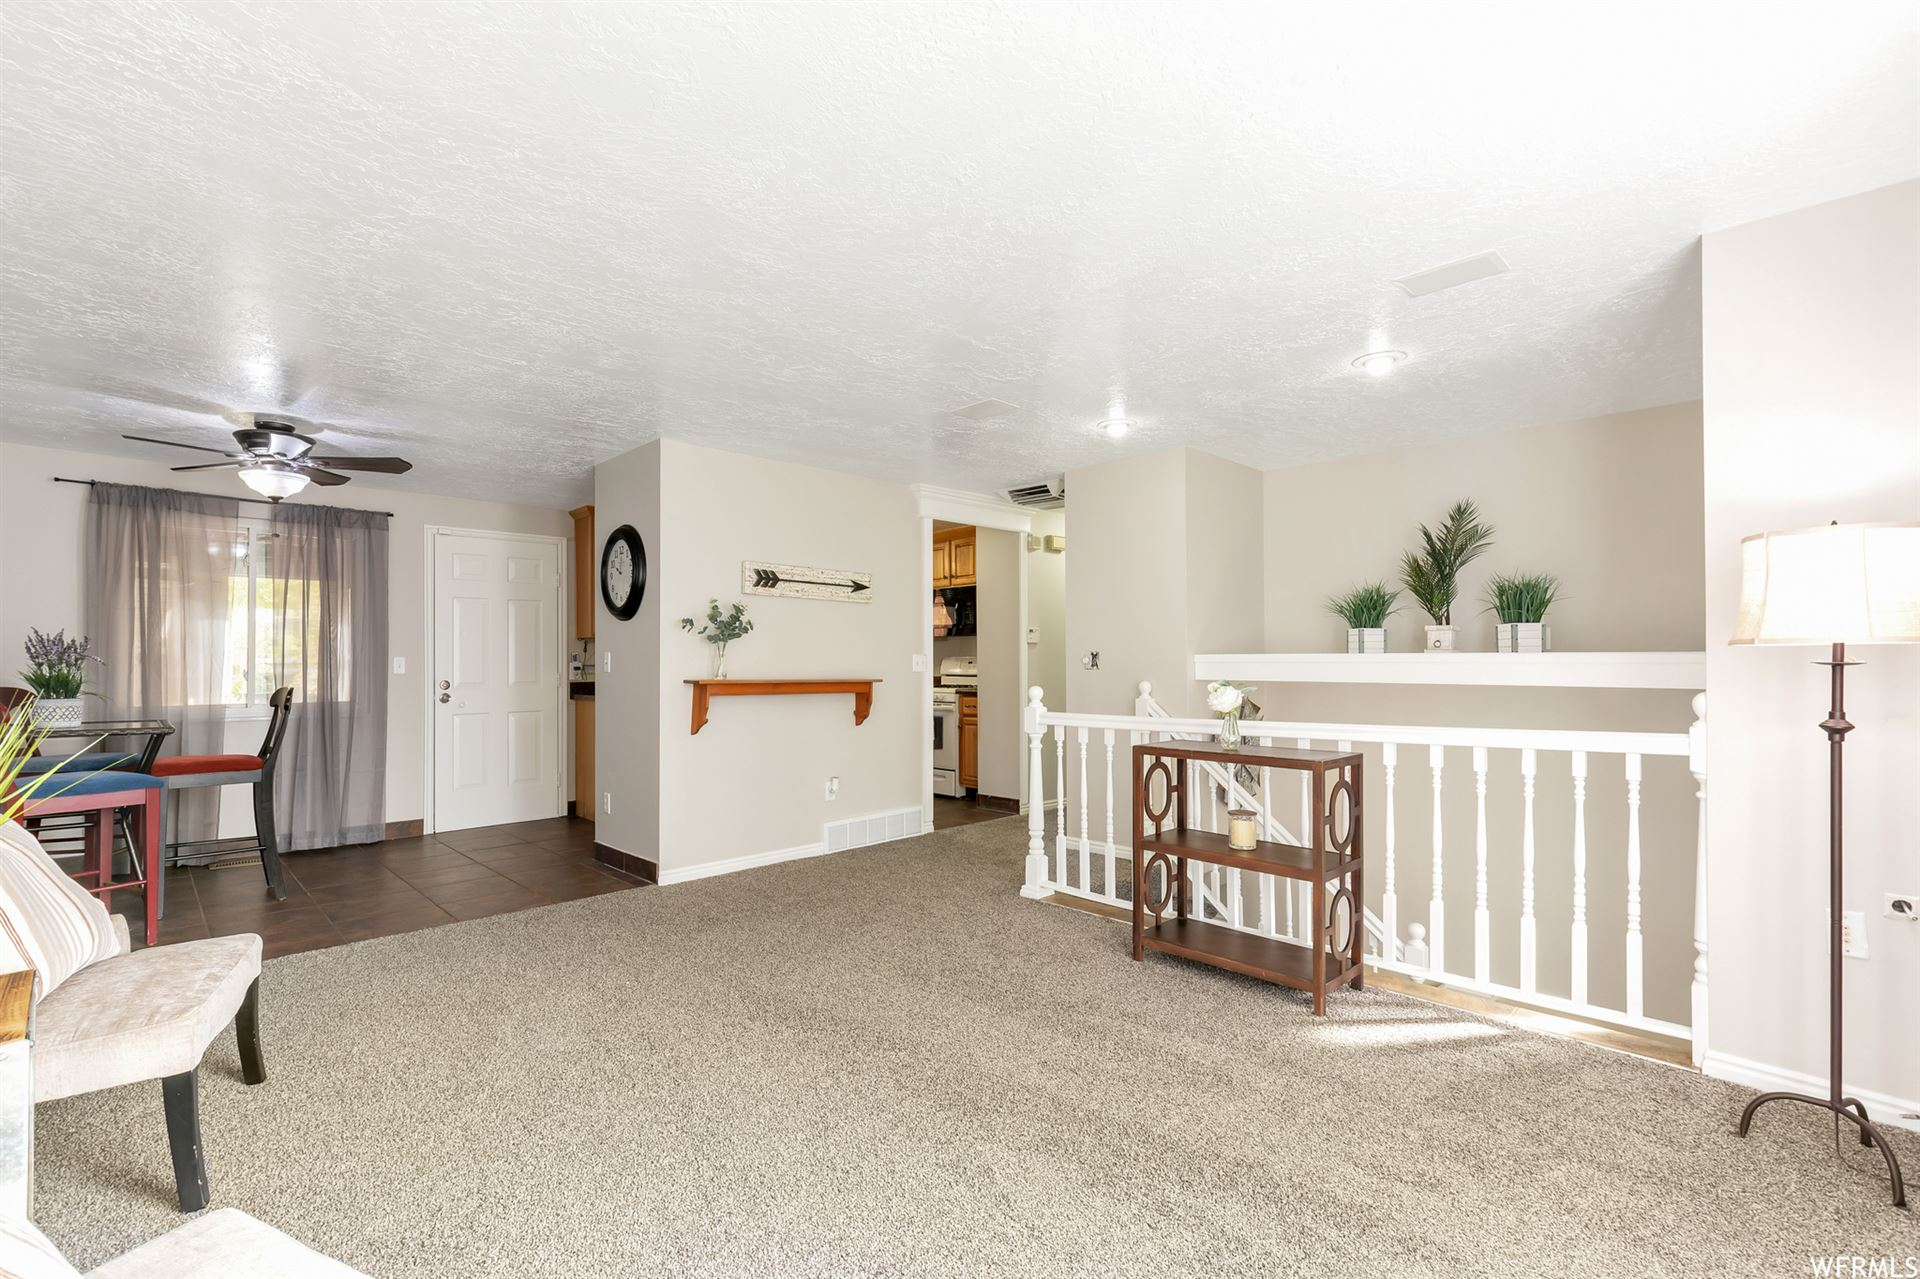 Photo of 3534 W CHISM CT, Taylorsville, UT 84129 (MLS # 1775868)